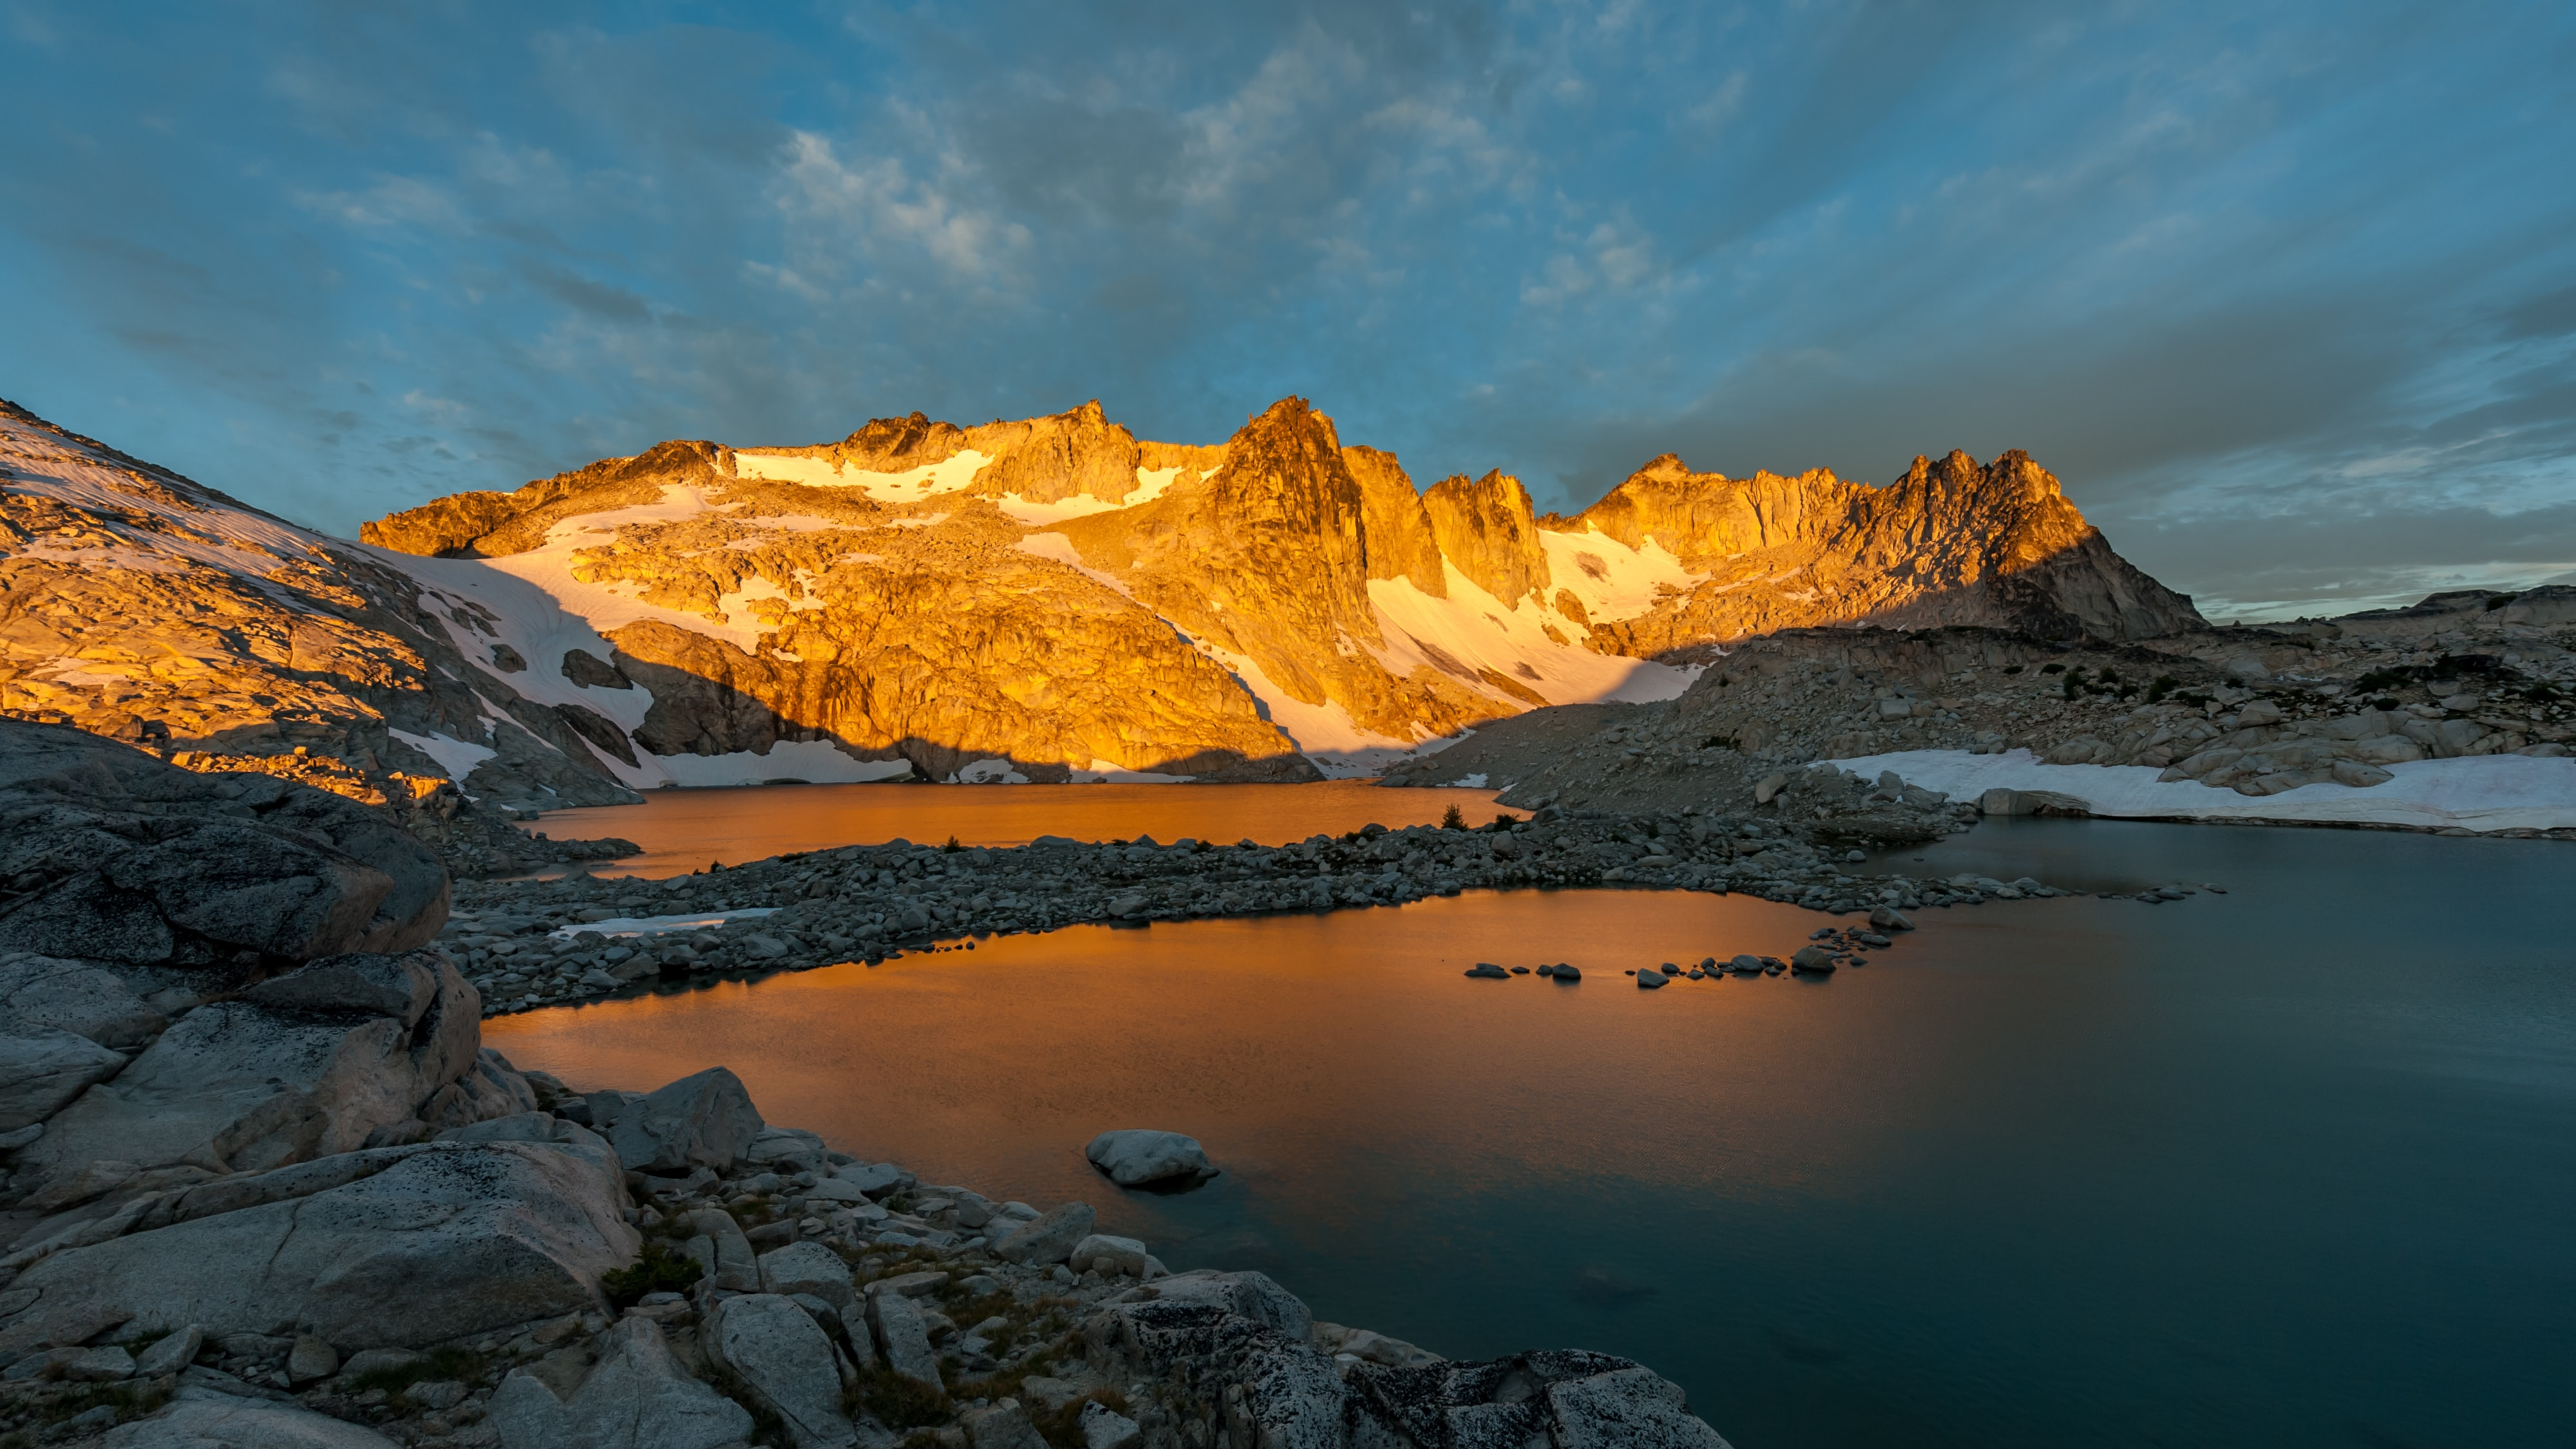 A snowcapped mountain range at Isolation Lake, with a sunset casting a bright light over the peaks